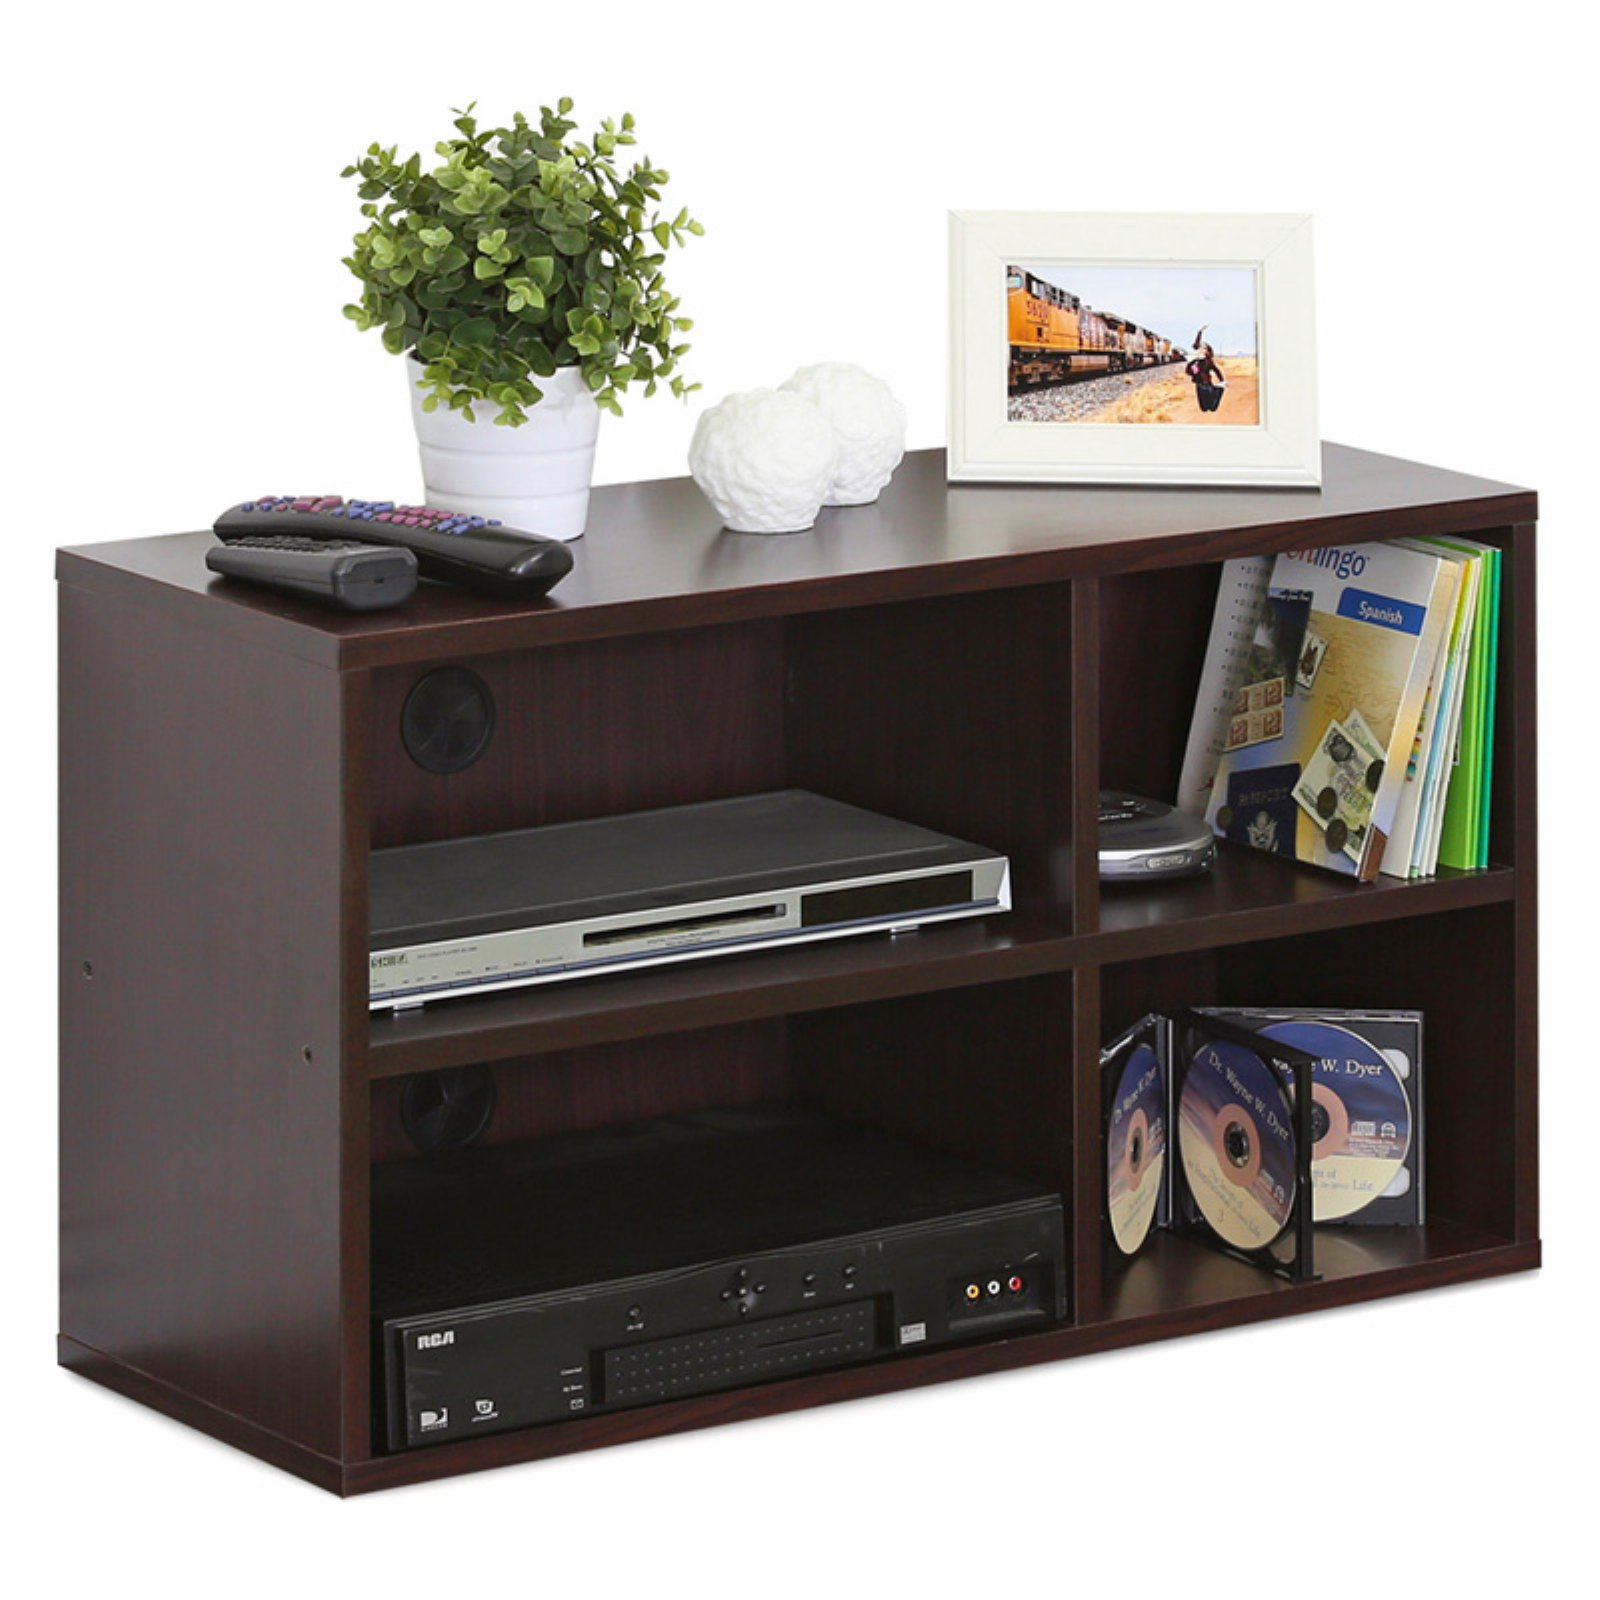 Furinno Indo Petite Audio Video Storage Shelf, Espresso